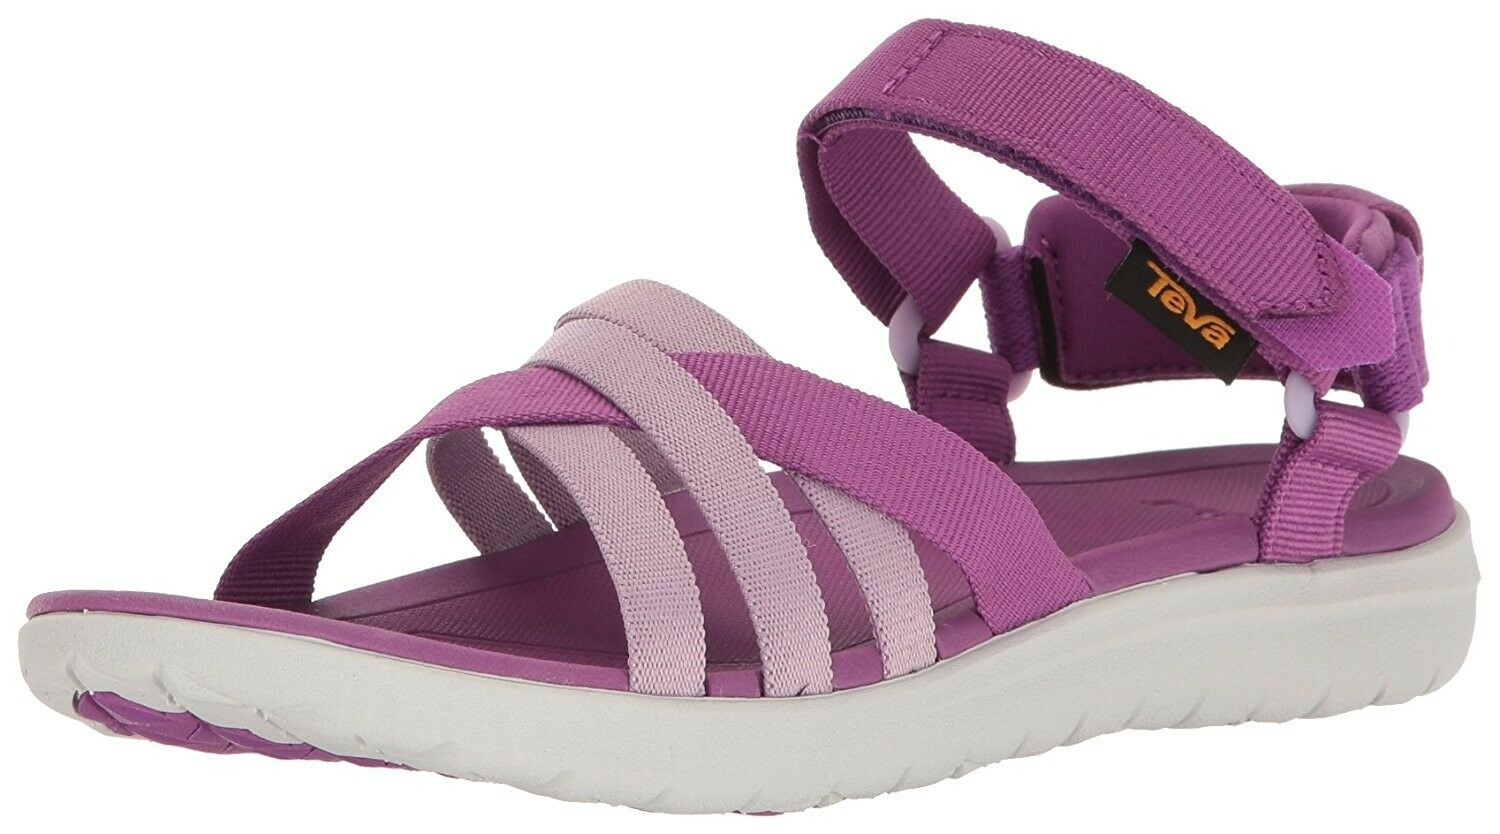 Teva Women's Sanborn Sandals Sizes 5-12 Many colors  Brand New